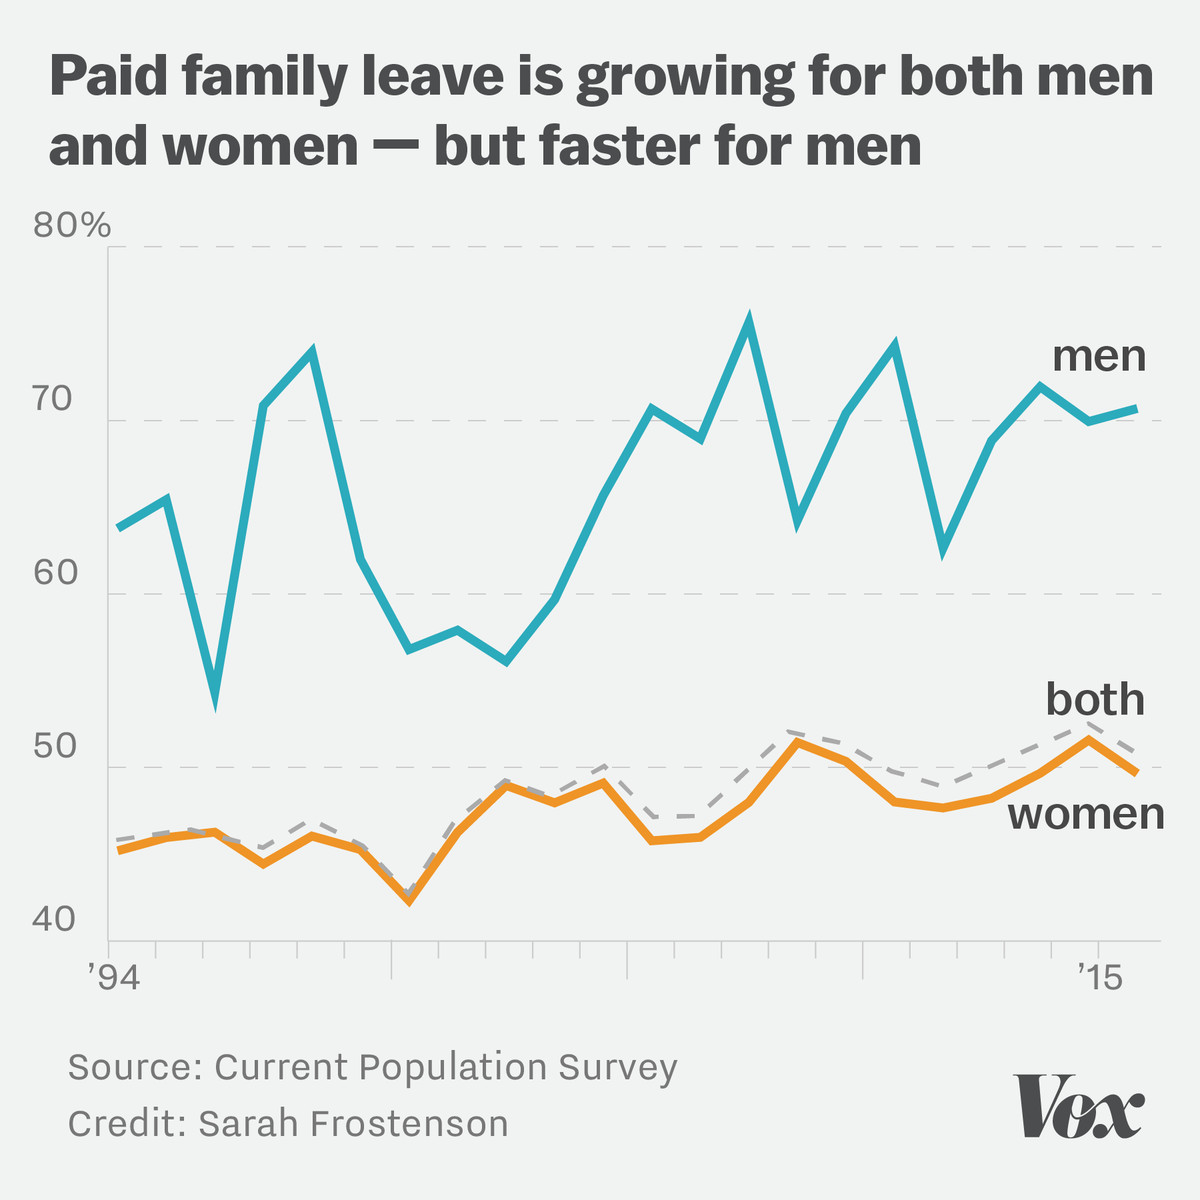 Chart showing that paid family leave has increased for both men and women, but faster for men